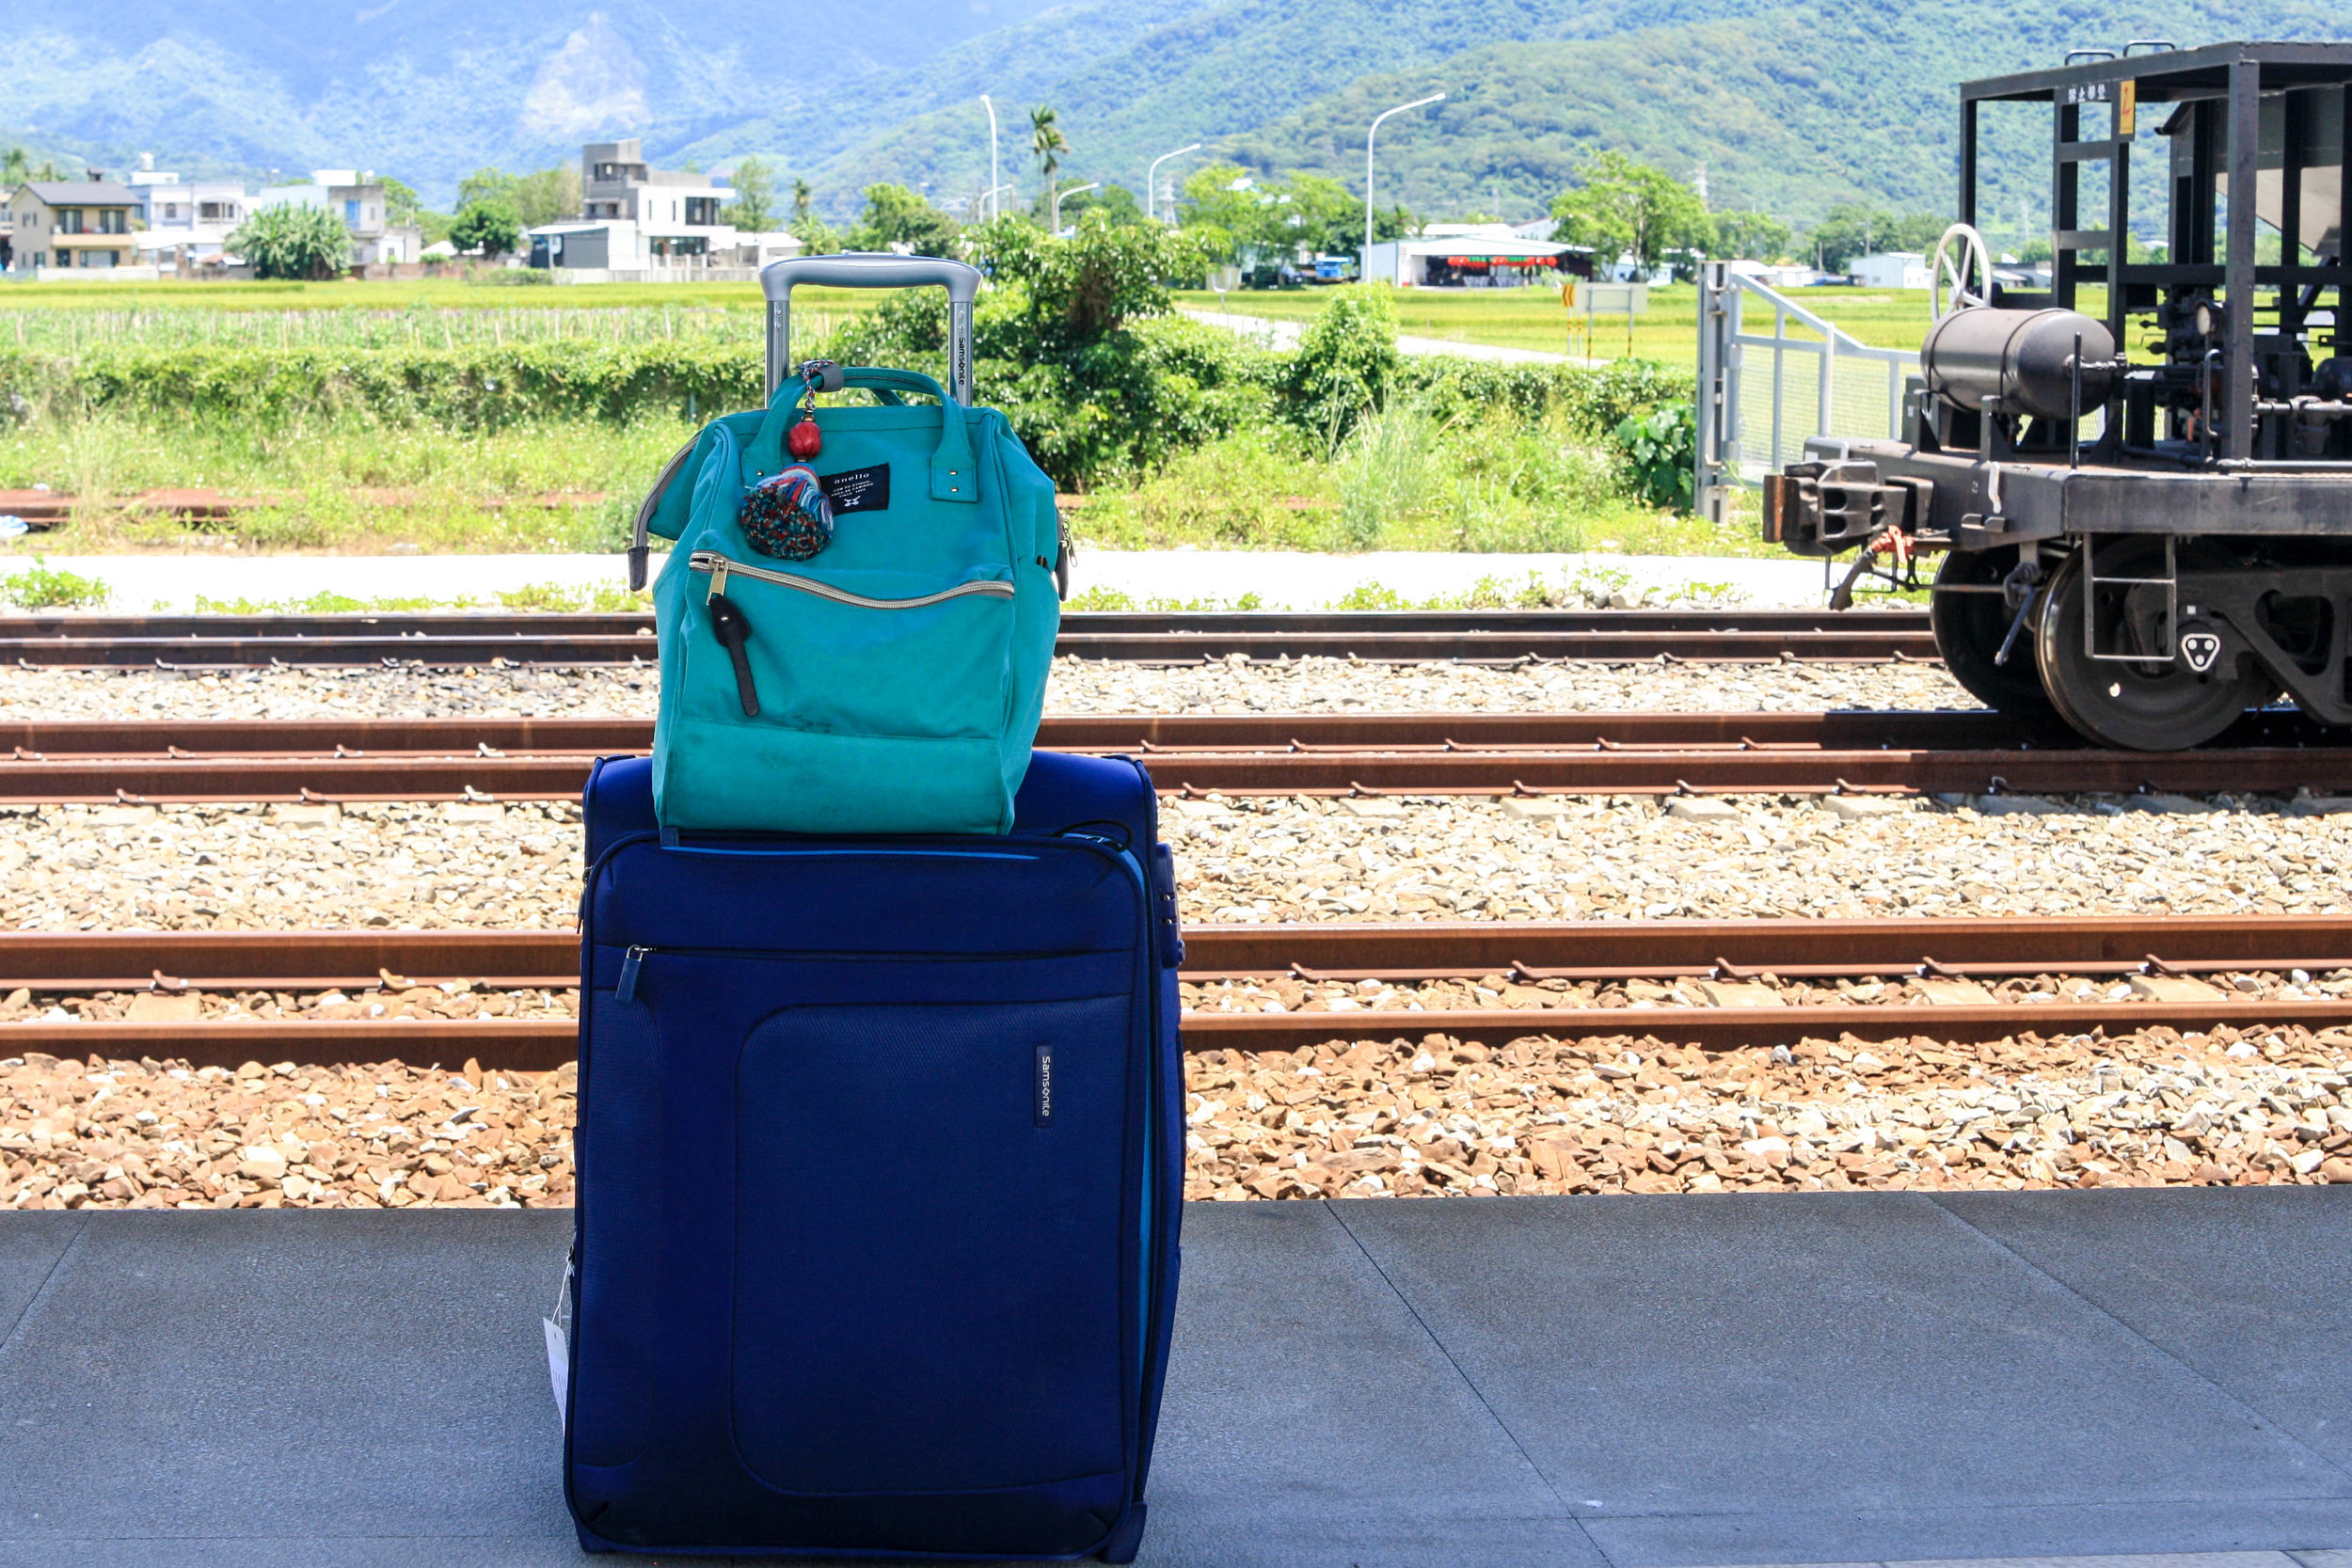 My favorite samsonite suitcase with a daypack I bought in Taiwan